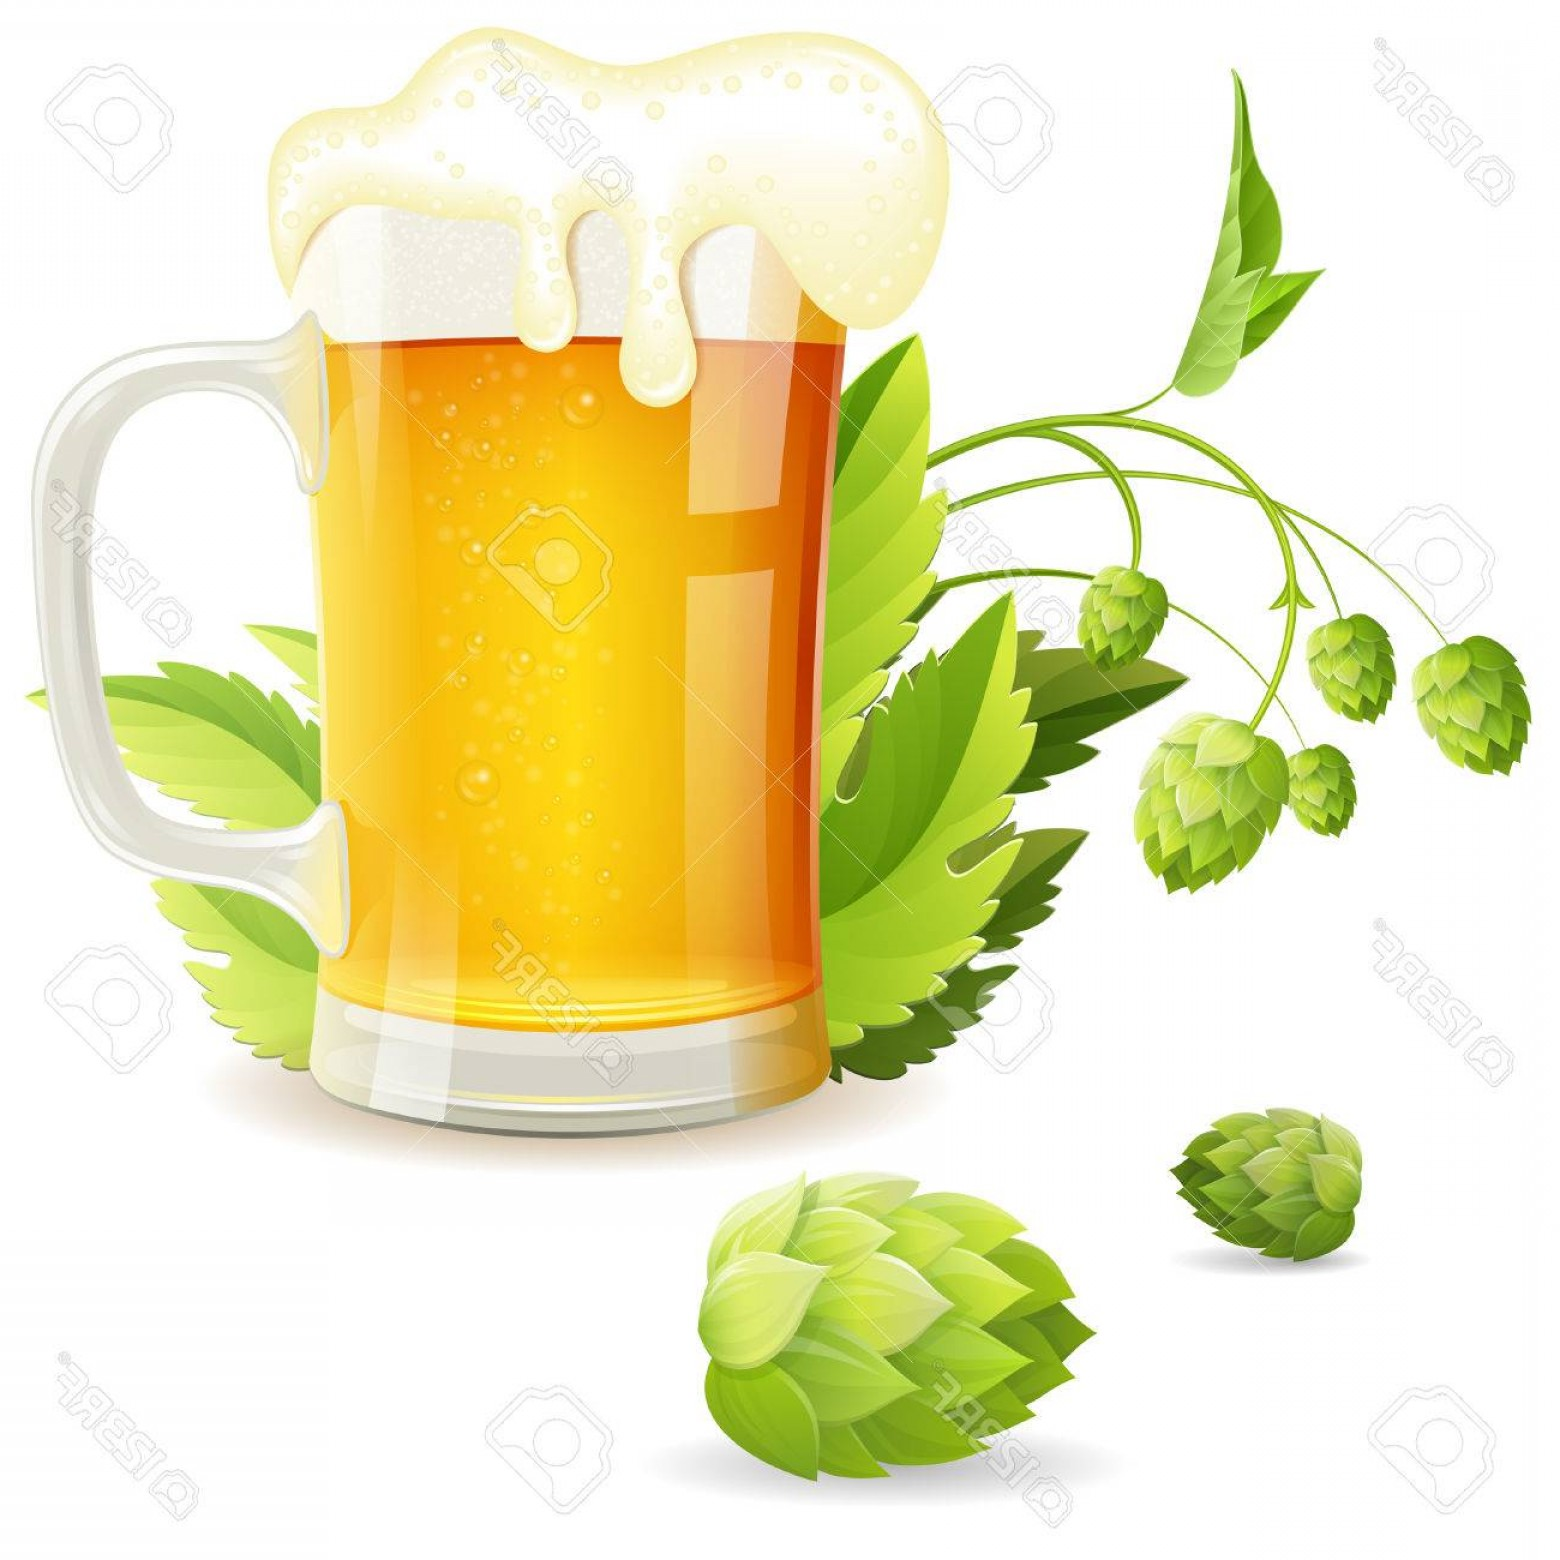 Beer Hops Vector: Photostock Vector Glass Of Beer With Hops Vector Isolated On White Background